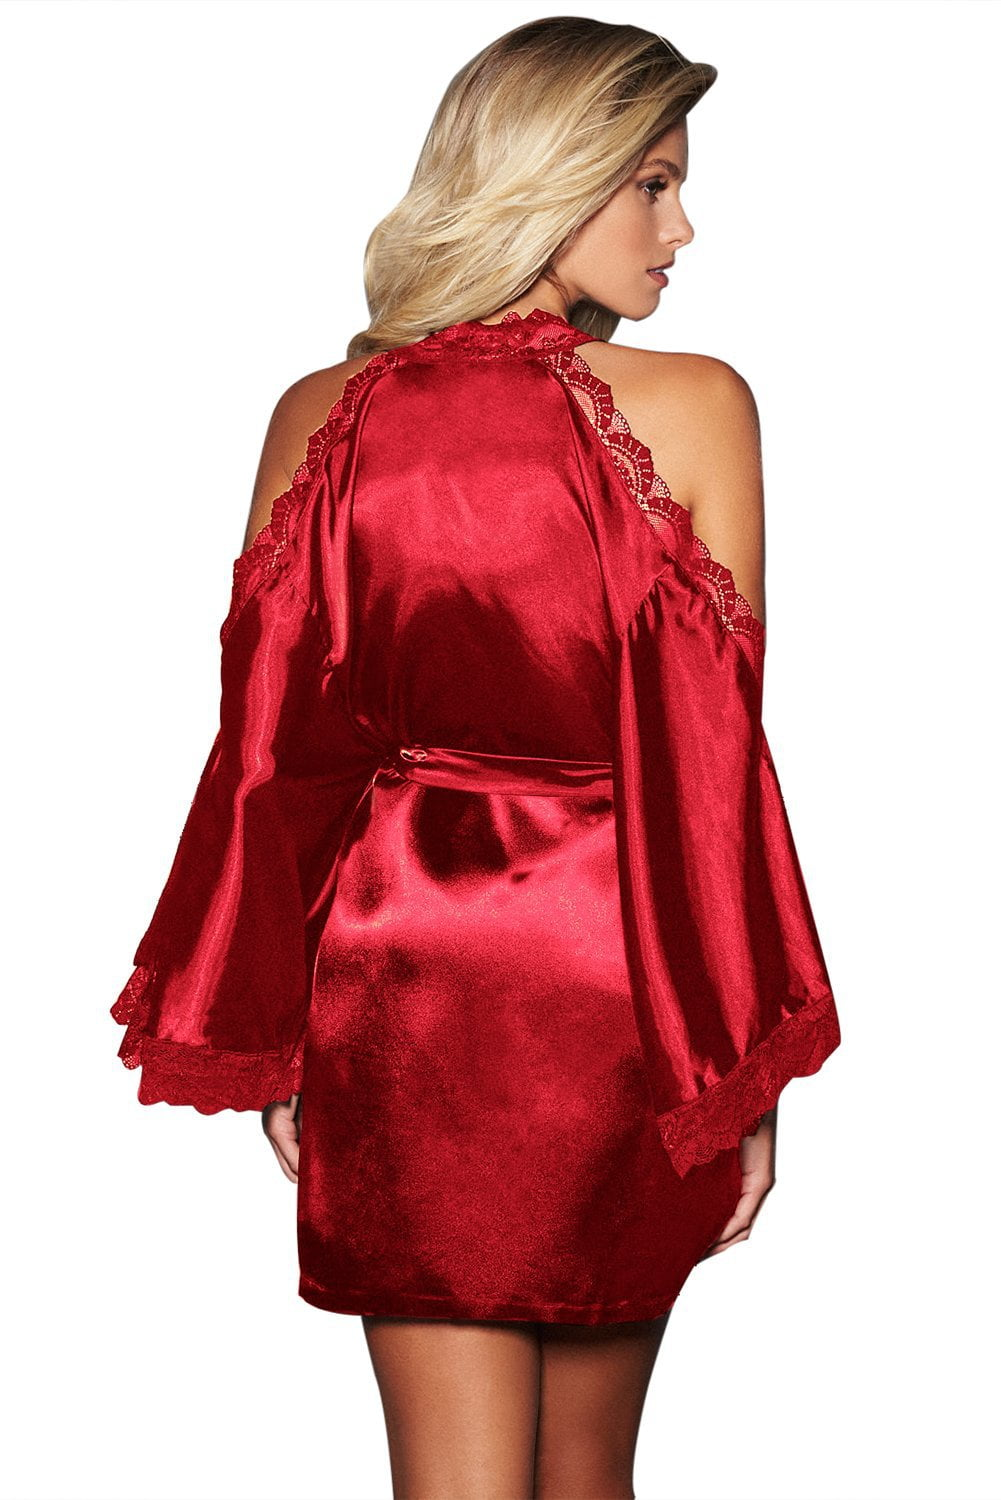 Passion Satin Robe